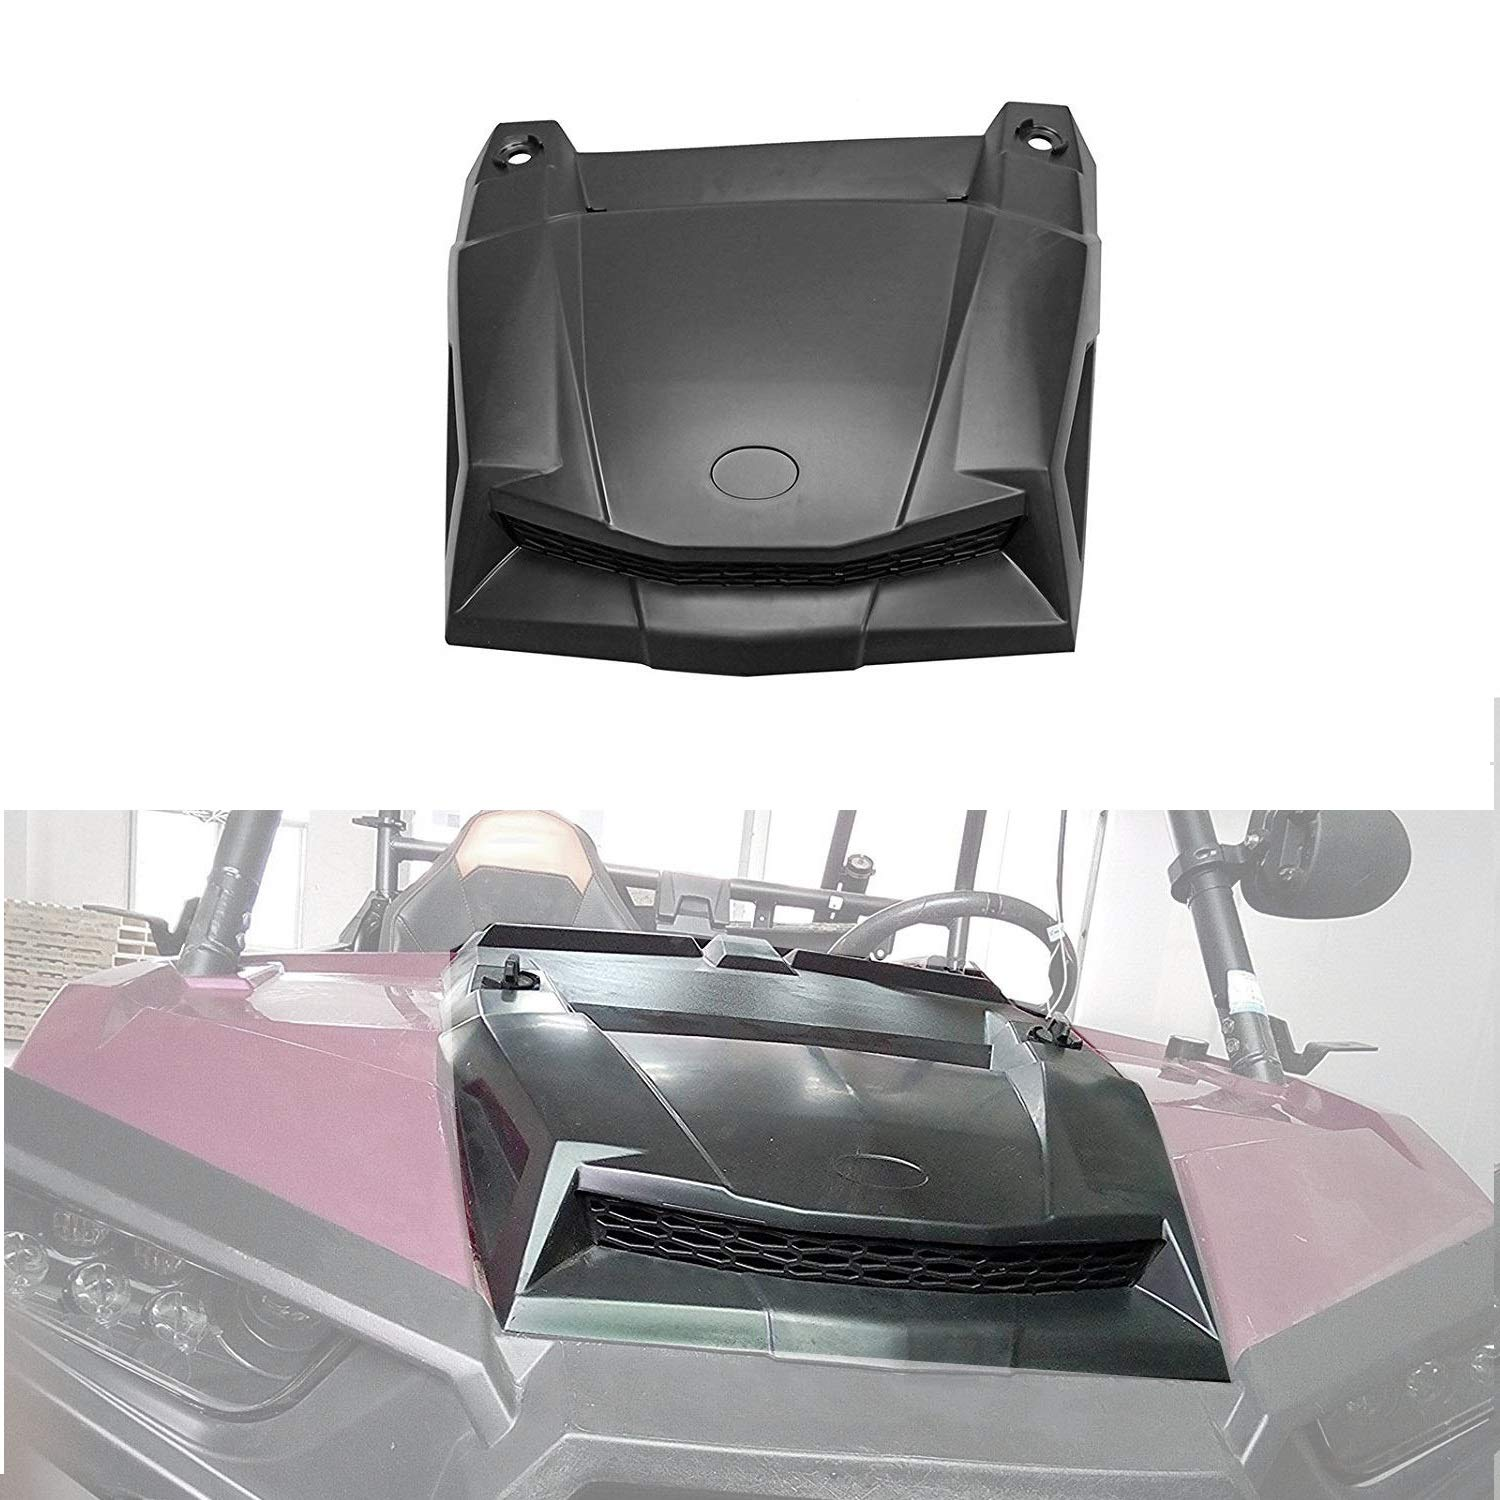 yjracing Turbo Hood Scoop Air Intake Fit for 2014-2018 Polaris RZR S XP 900 4 1000 2881467